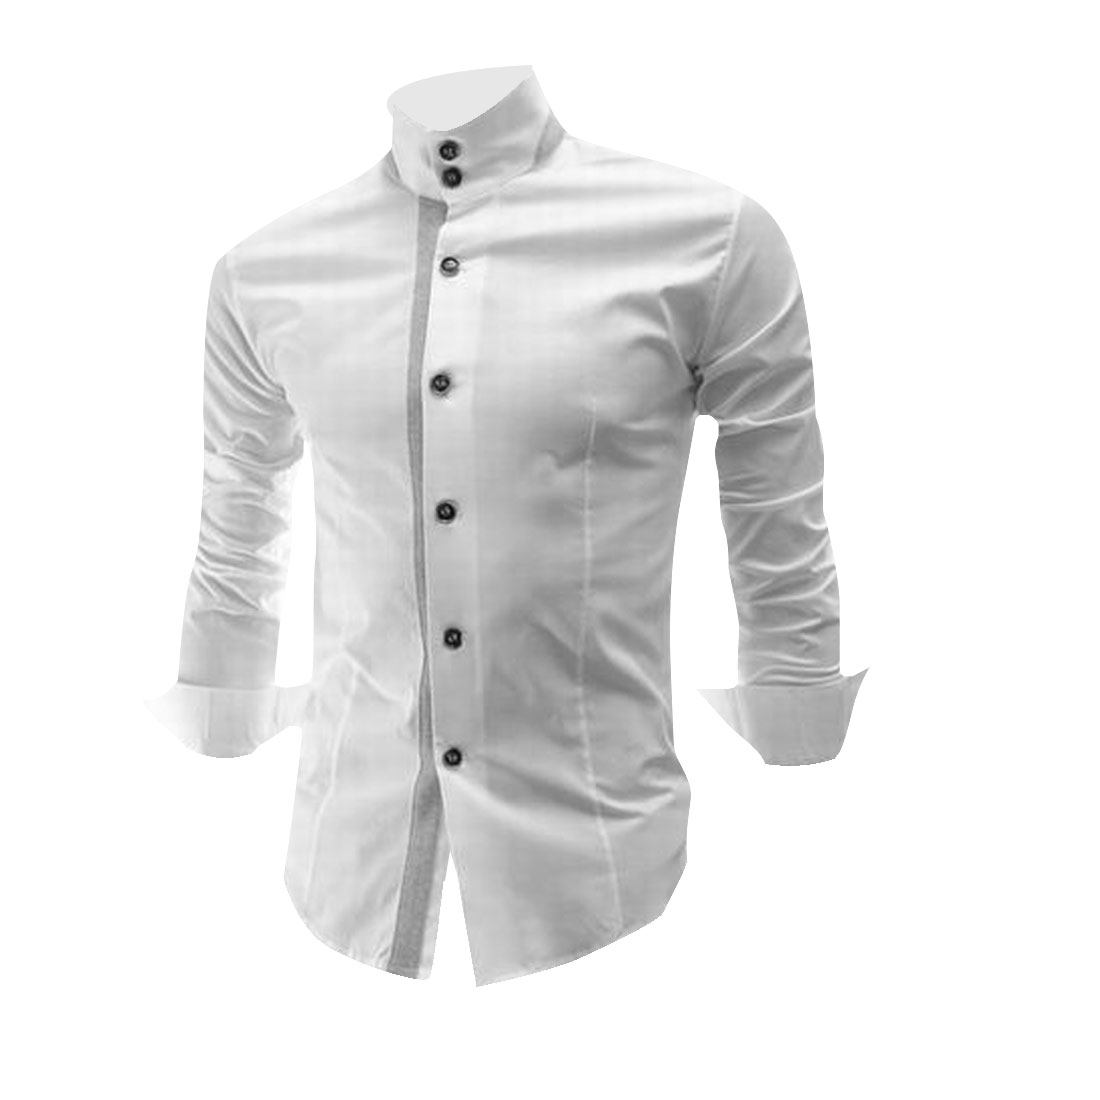 Men Stylish White Color Button Down Casual Shirt S